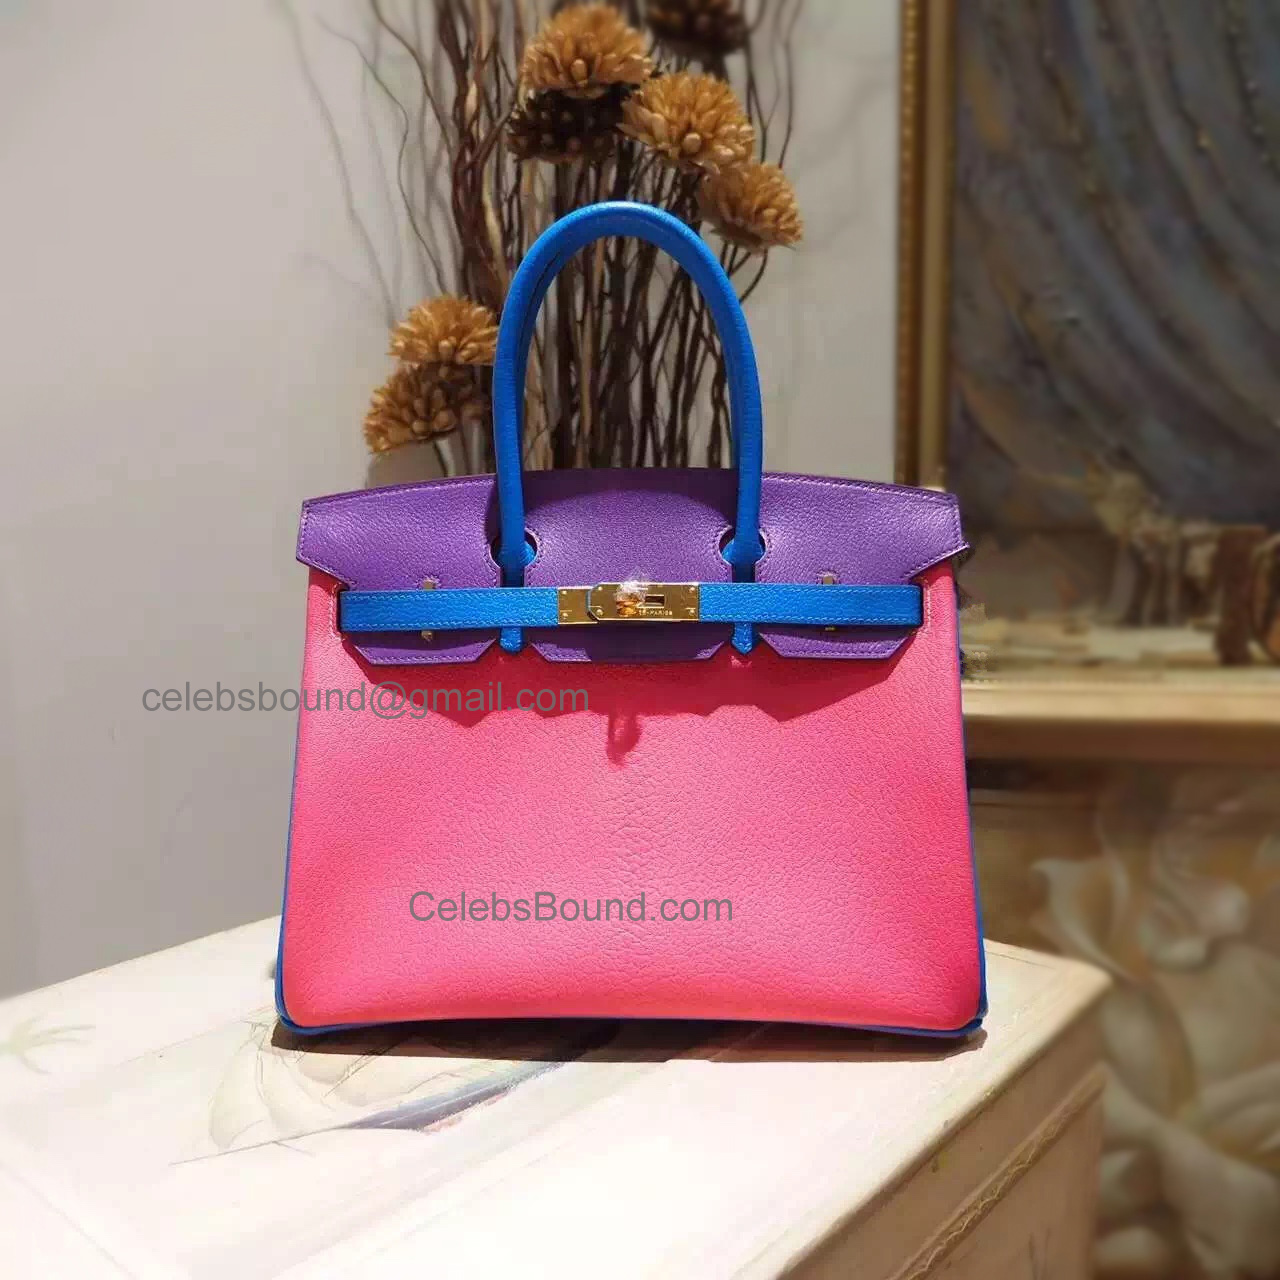 Handstitched Hermes Birkin 30 Bag in Multicolored 8w Rose Azalee Chevere Myzore Goatskin GHW